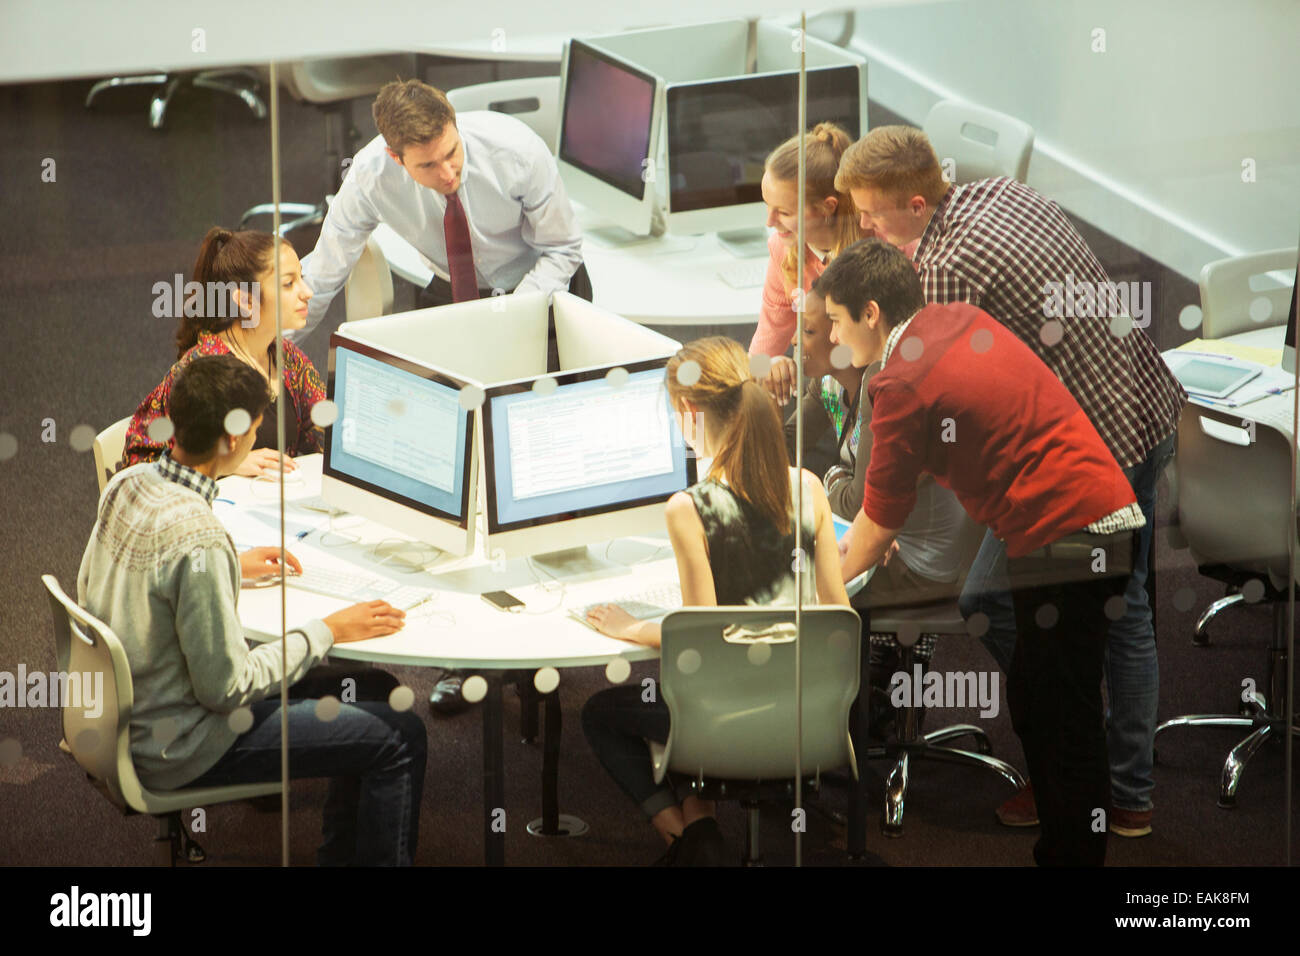 Students during IT lesson in modern classroom with glass walls - Stock Image